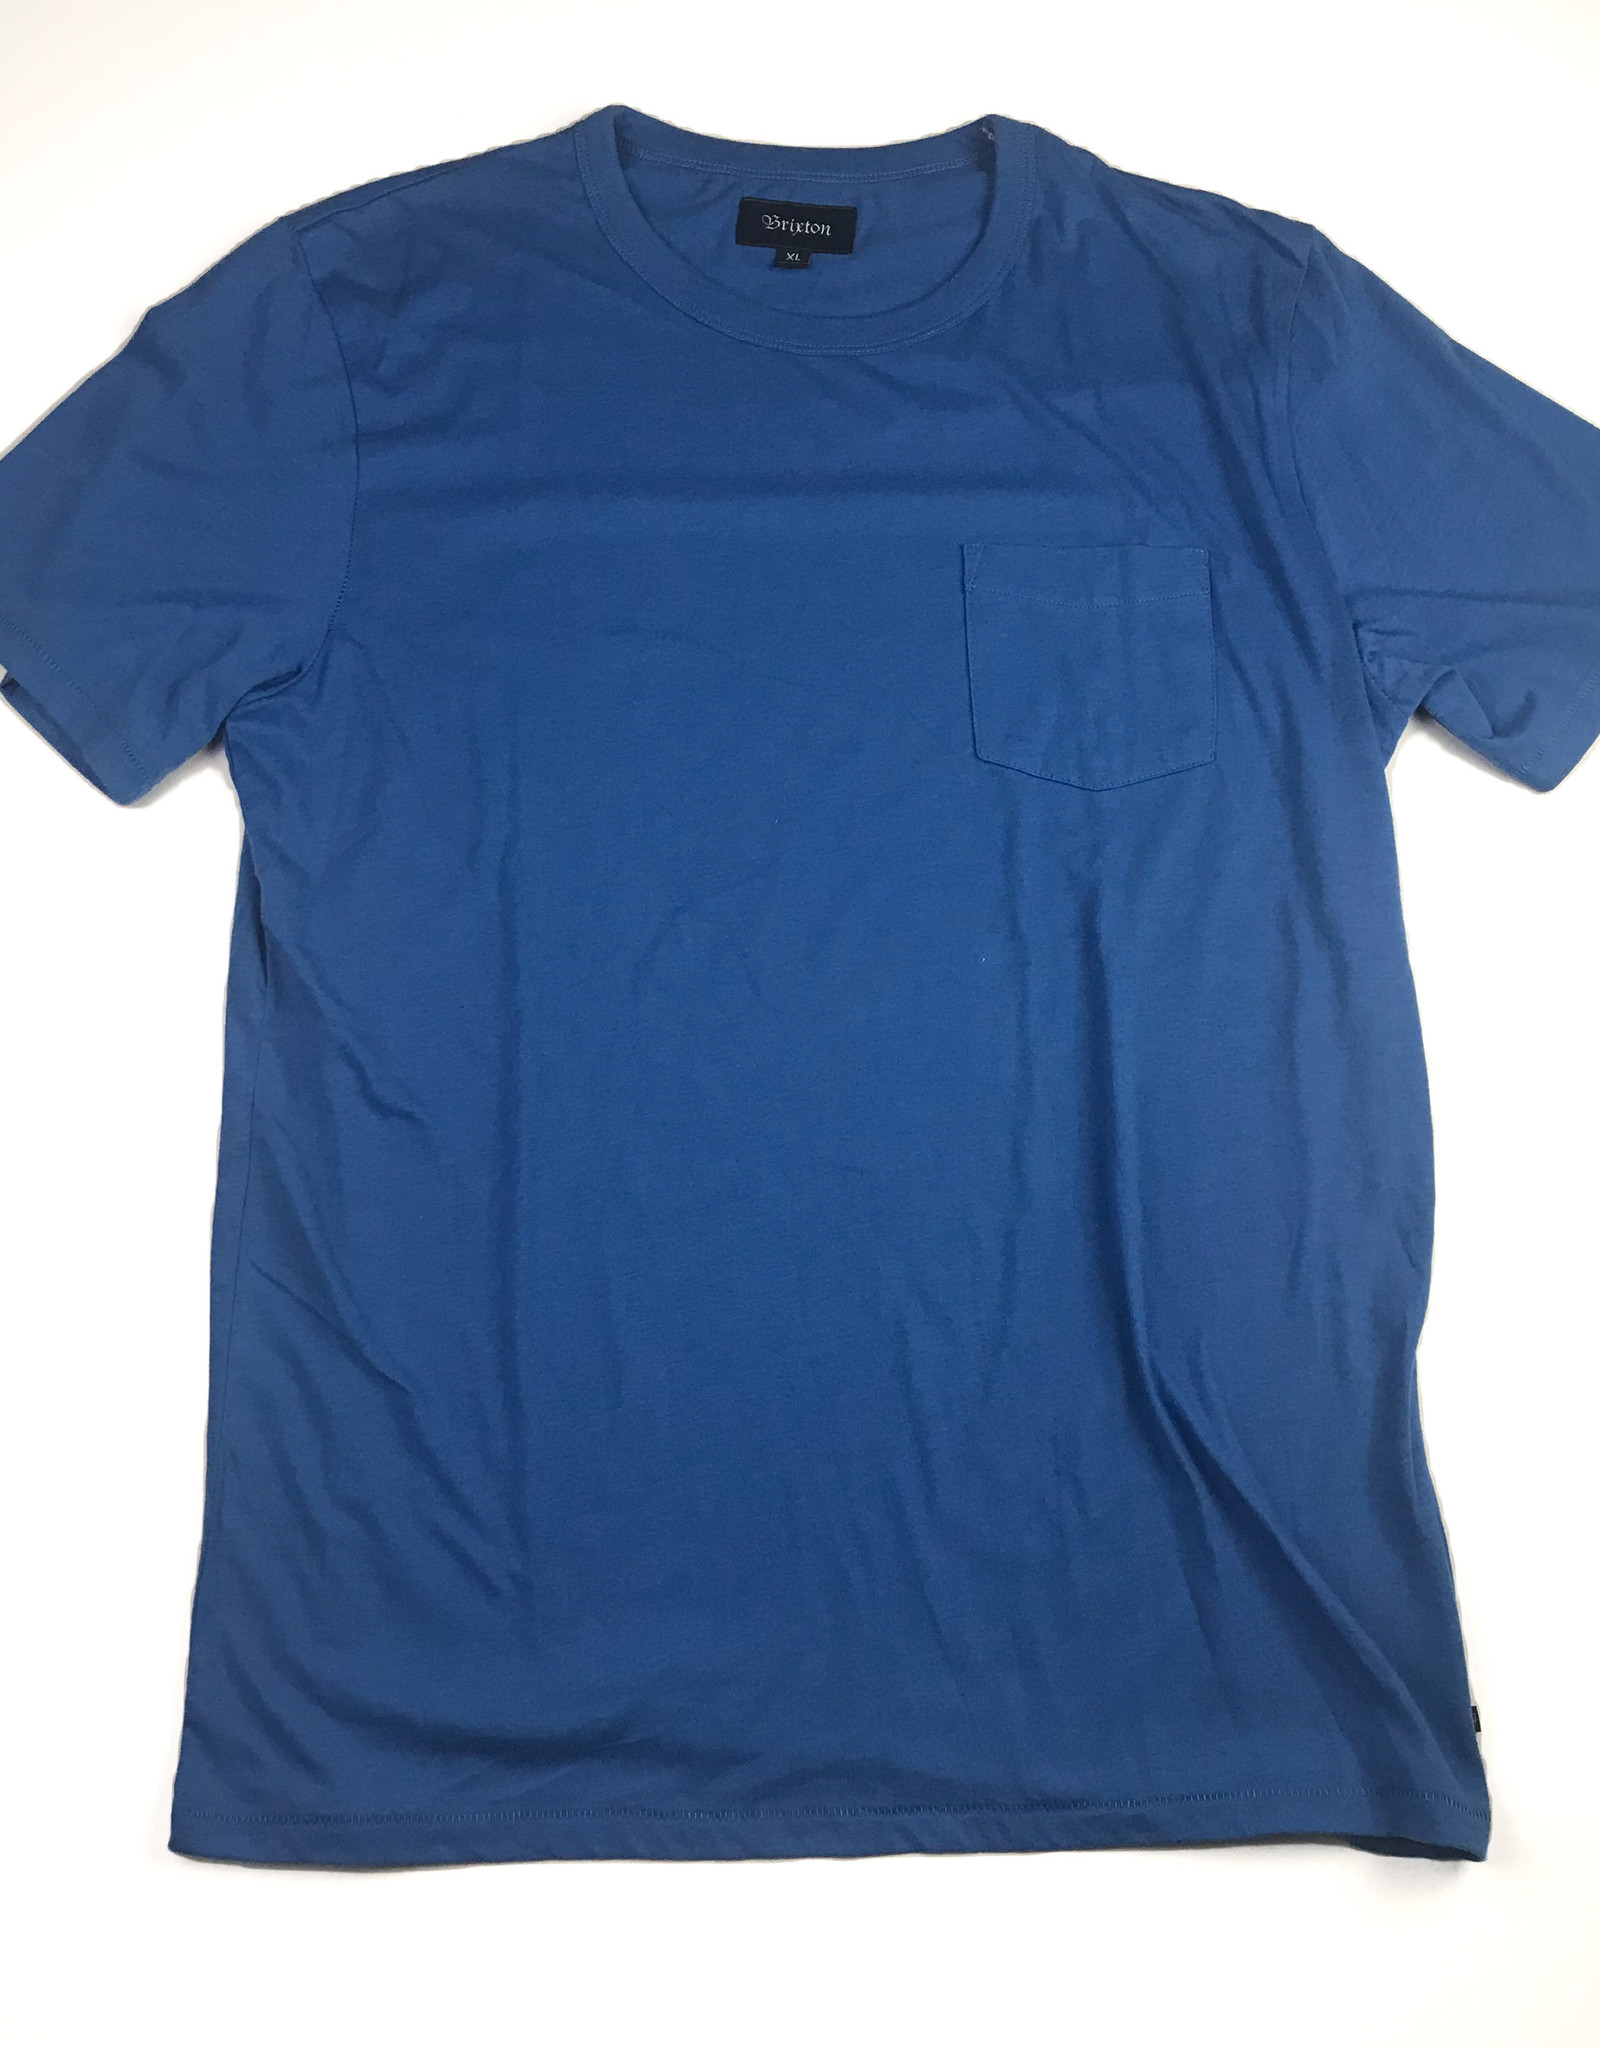 BRIXTON BRIXTON POGUE TEE - WASHED ROYAL